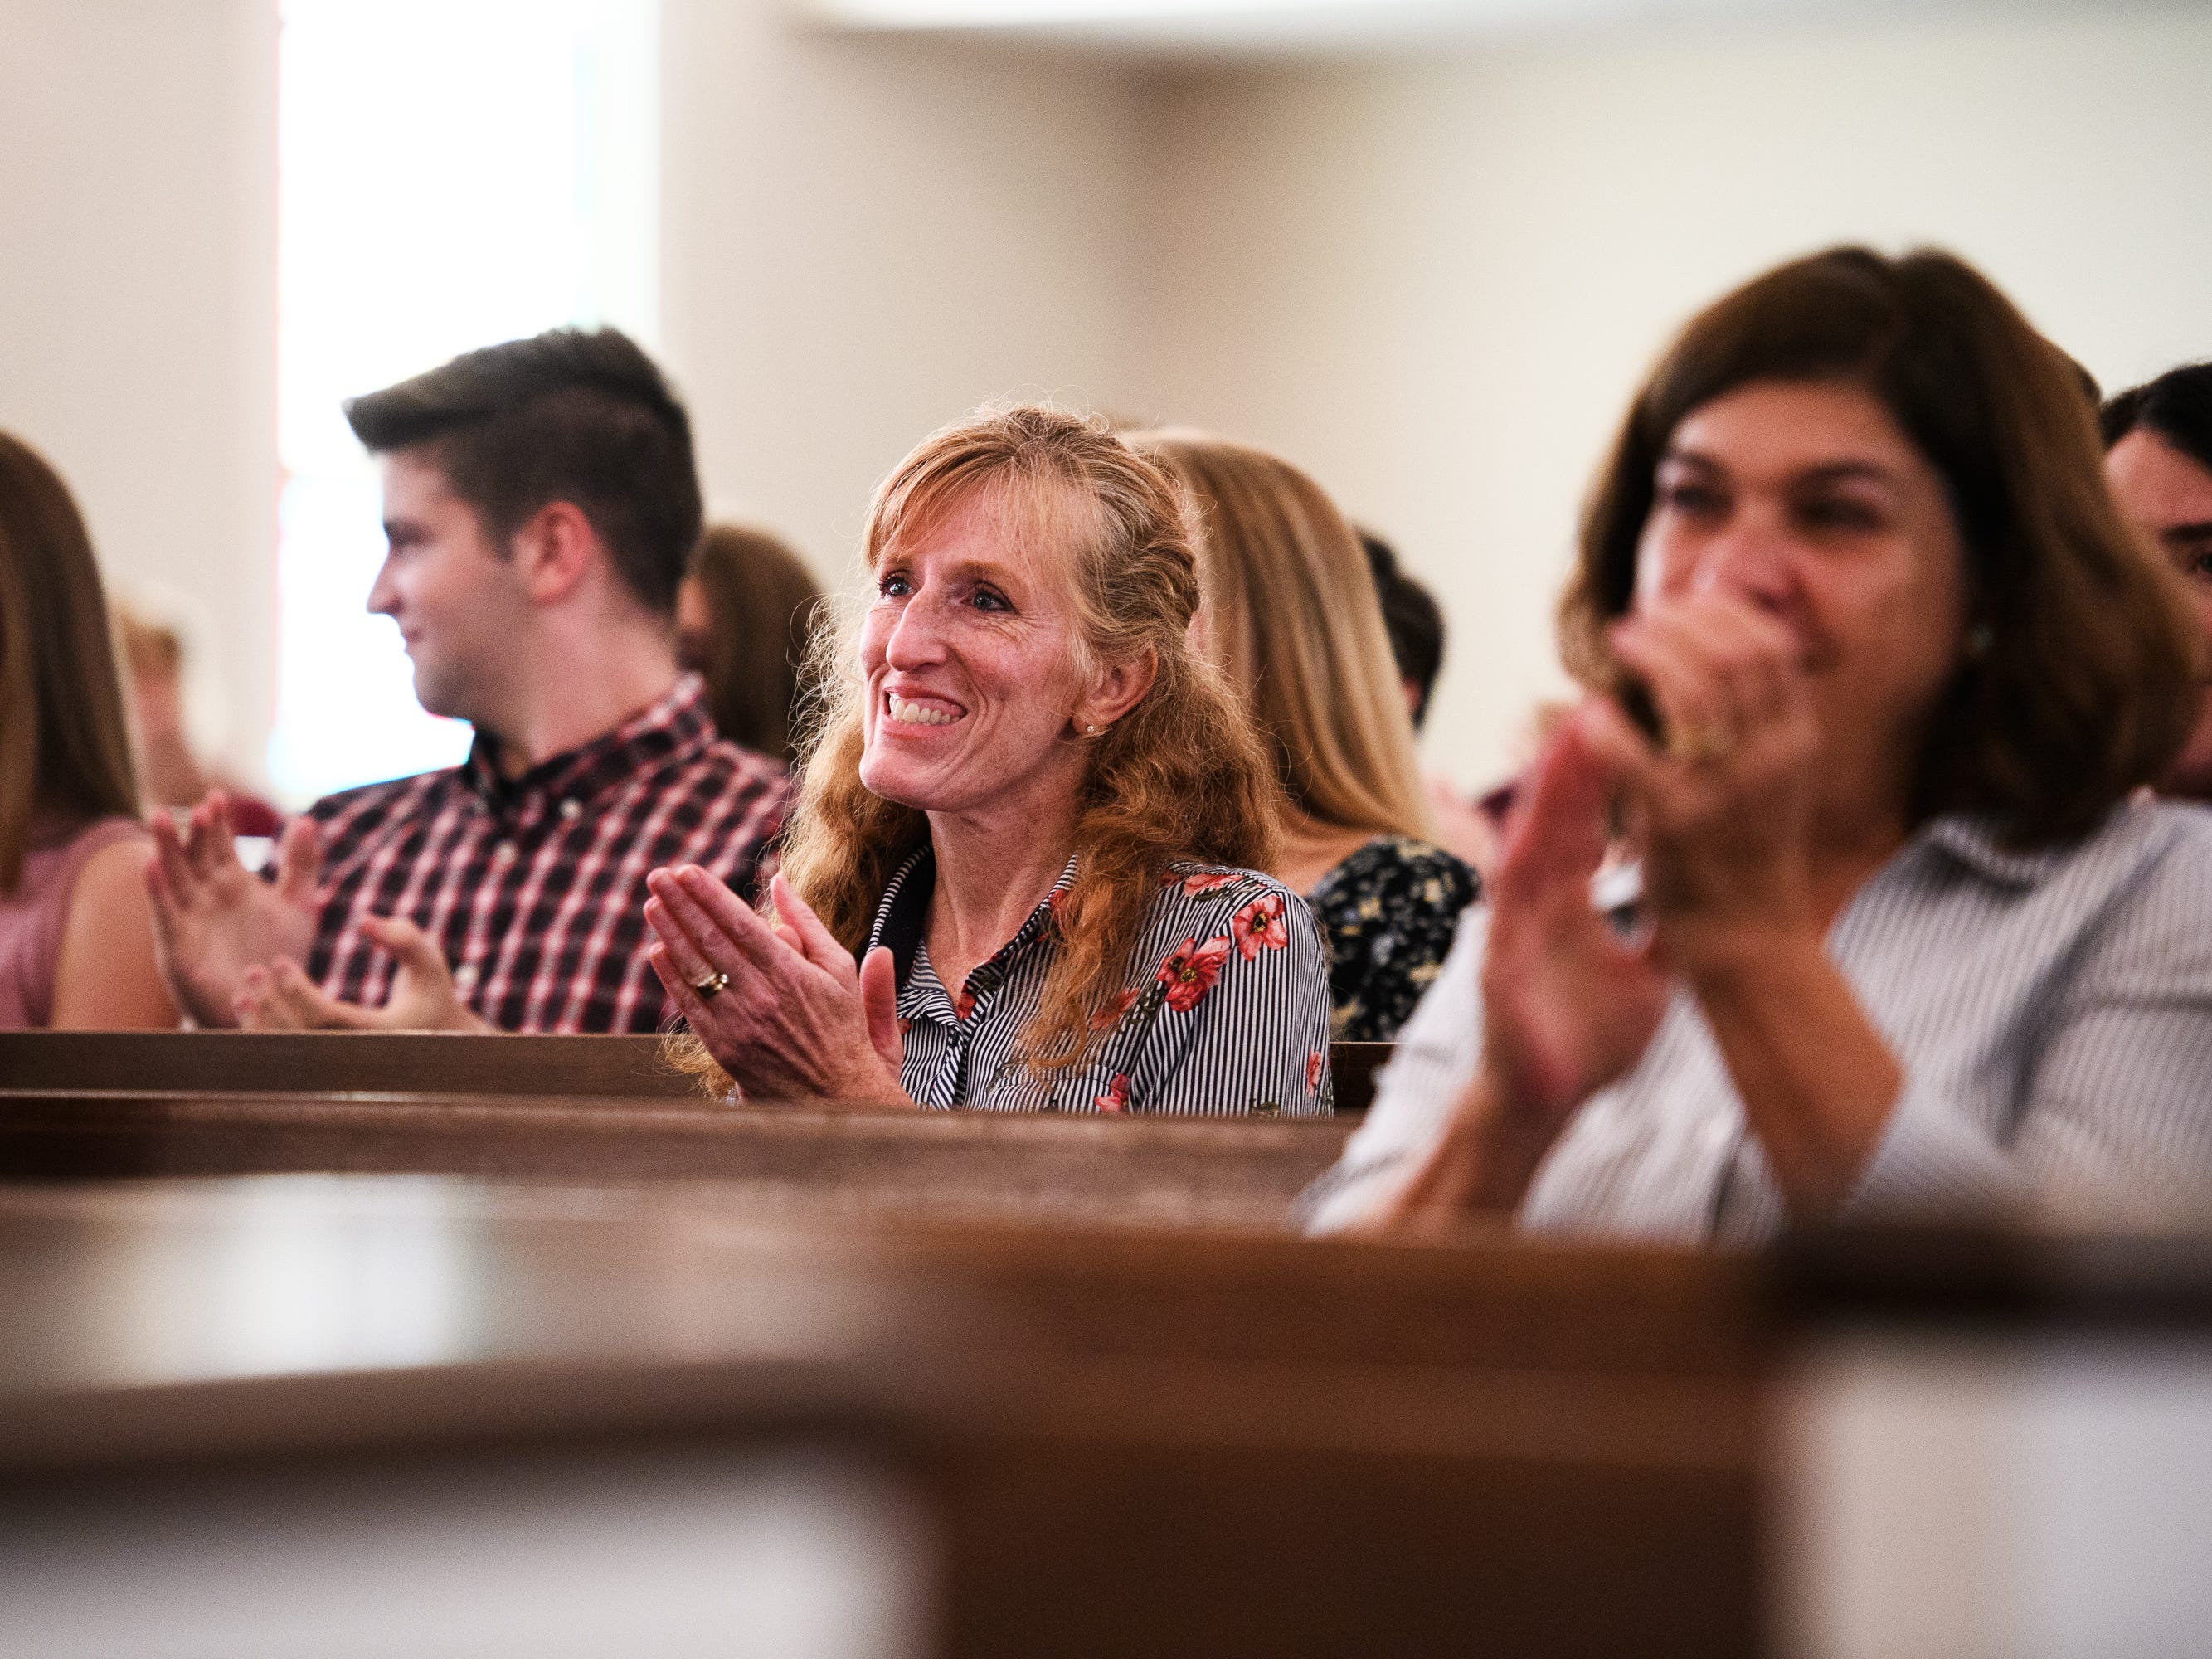 People cheer during an early graduation ceremony for Joshua Lee Vanghn at Pleasant Grove Baptist Church on Tuesday, Oct. 9, 2018.